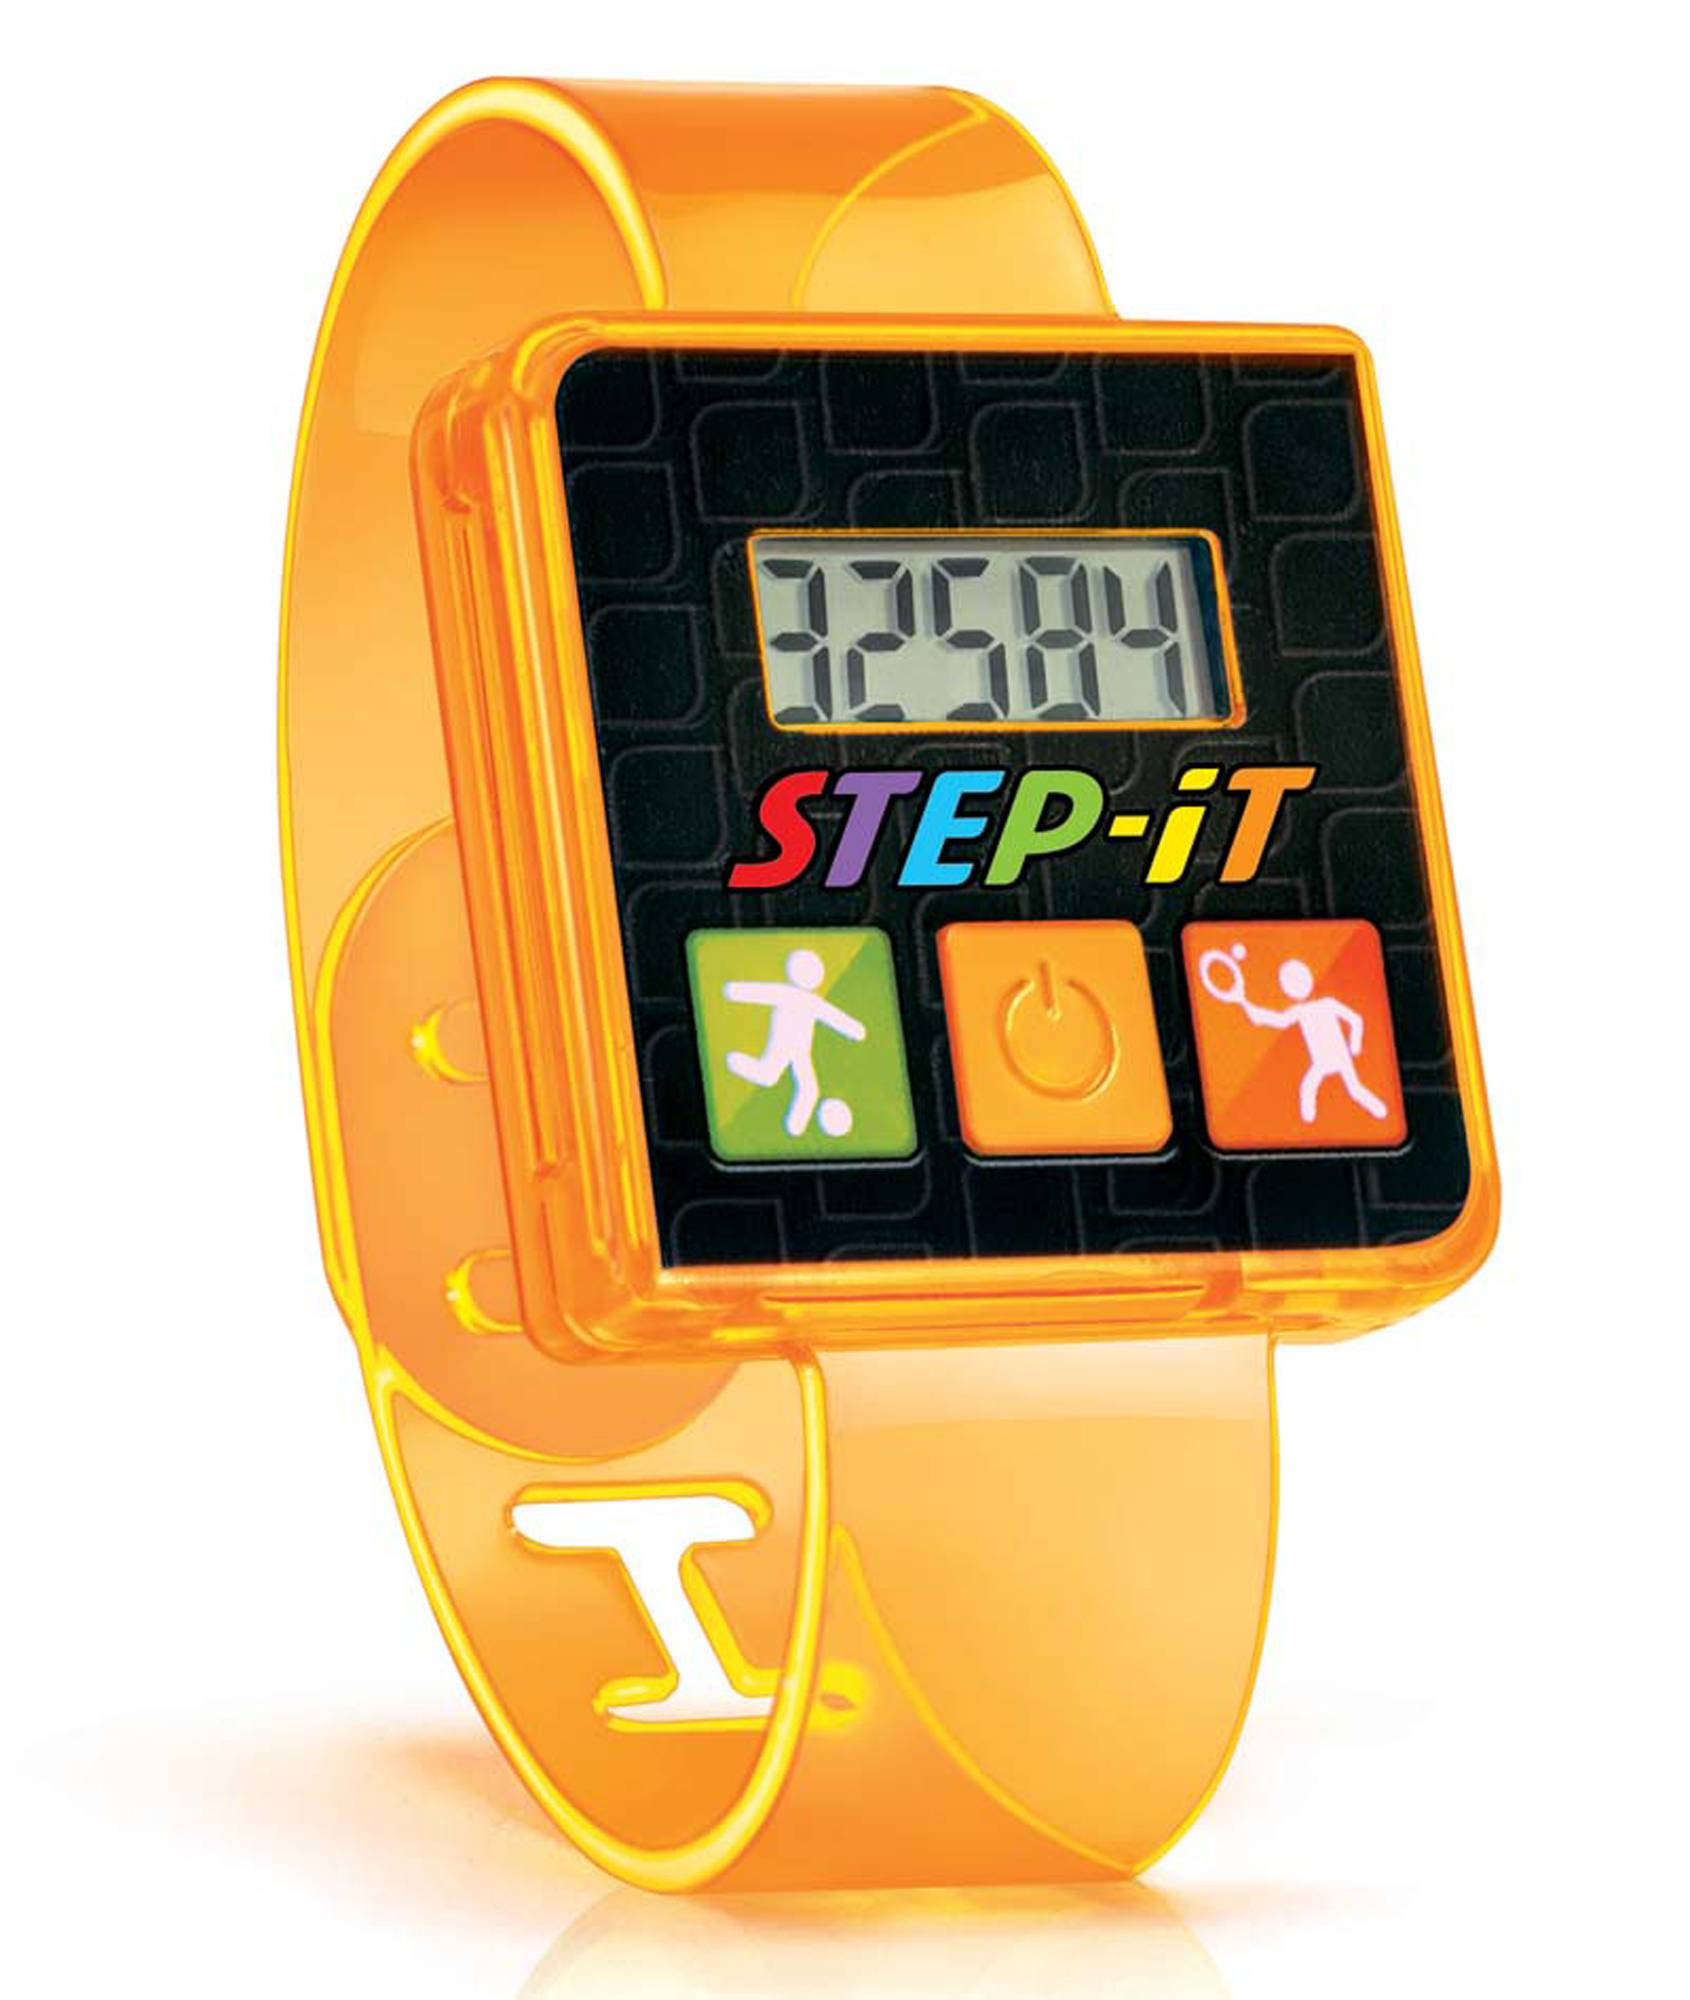 McDonald's announced Tuesday that the company is recalling the Step-It Happy Meal wristband toy that it had put in Happy Meals because they might cause skin irritation or burns to children.